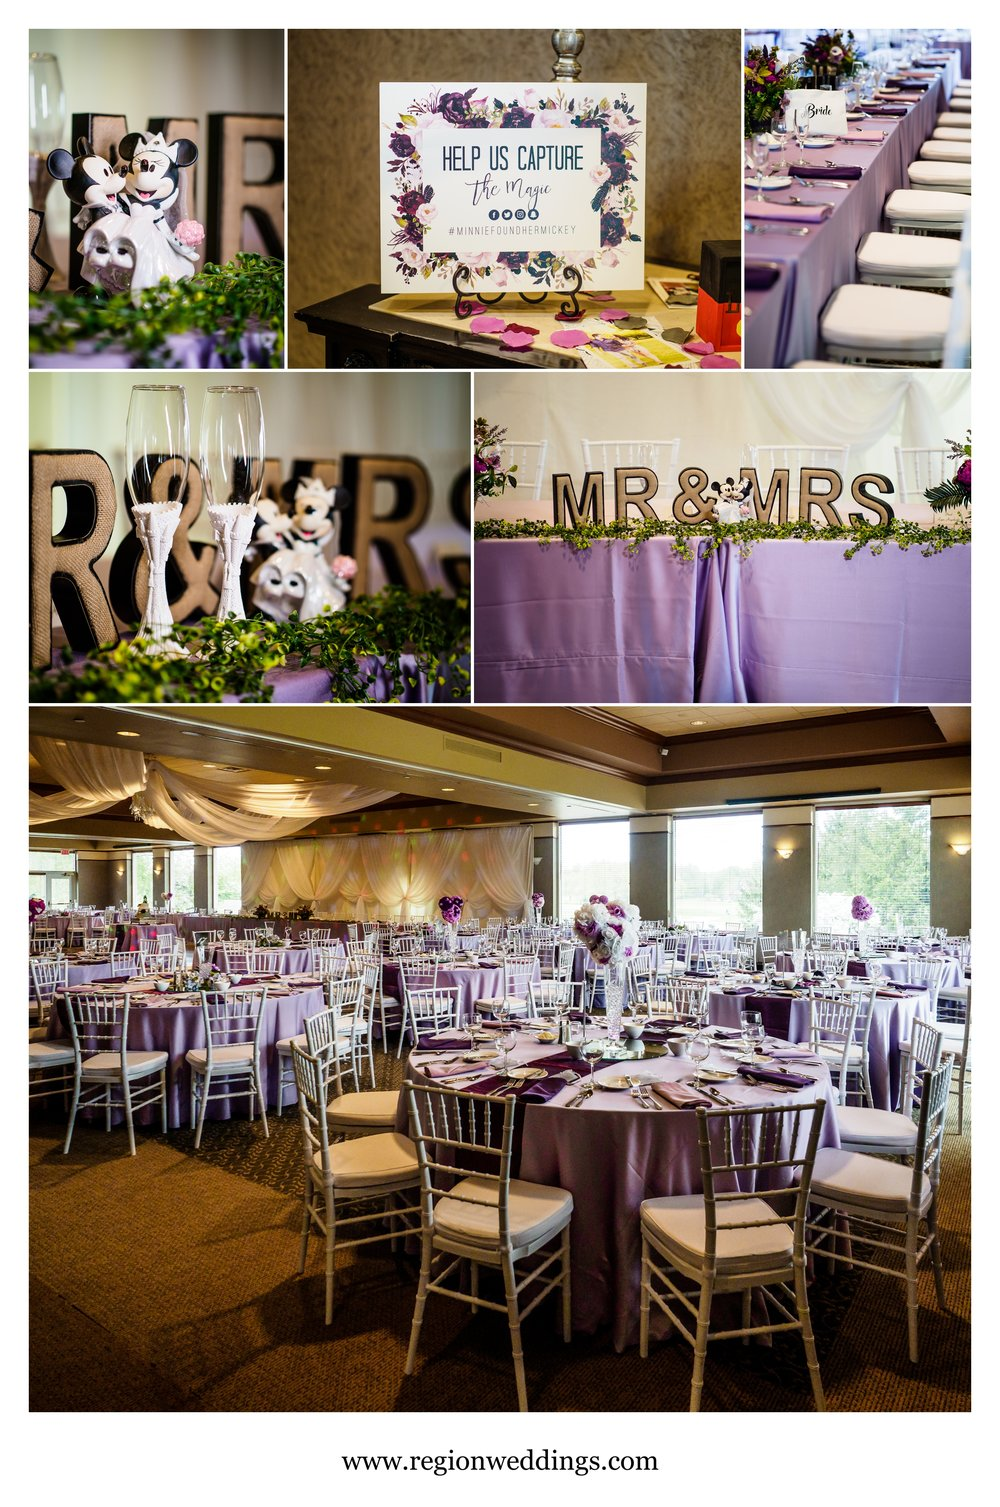 A Disney inspired wedding reception at Sand Creek Country Club.